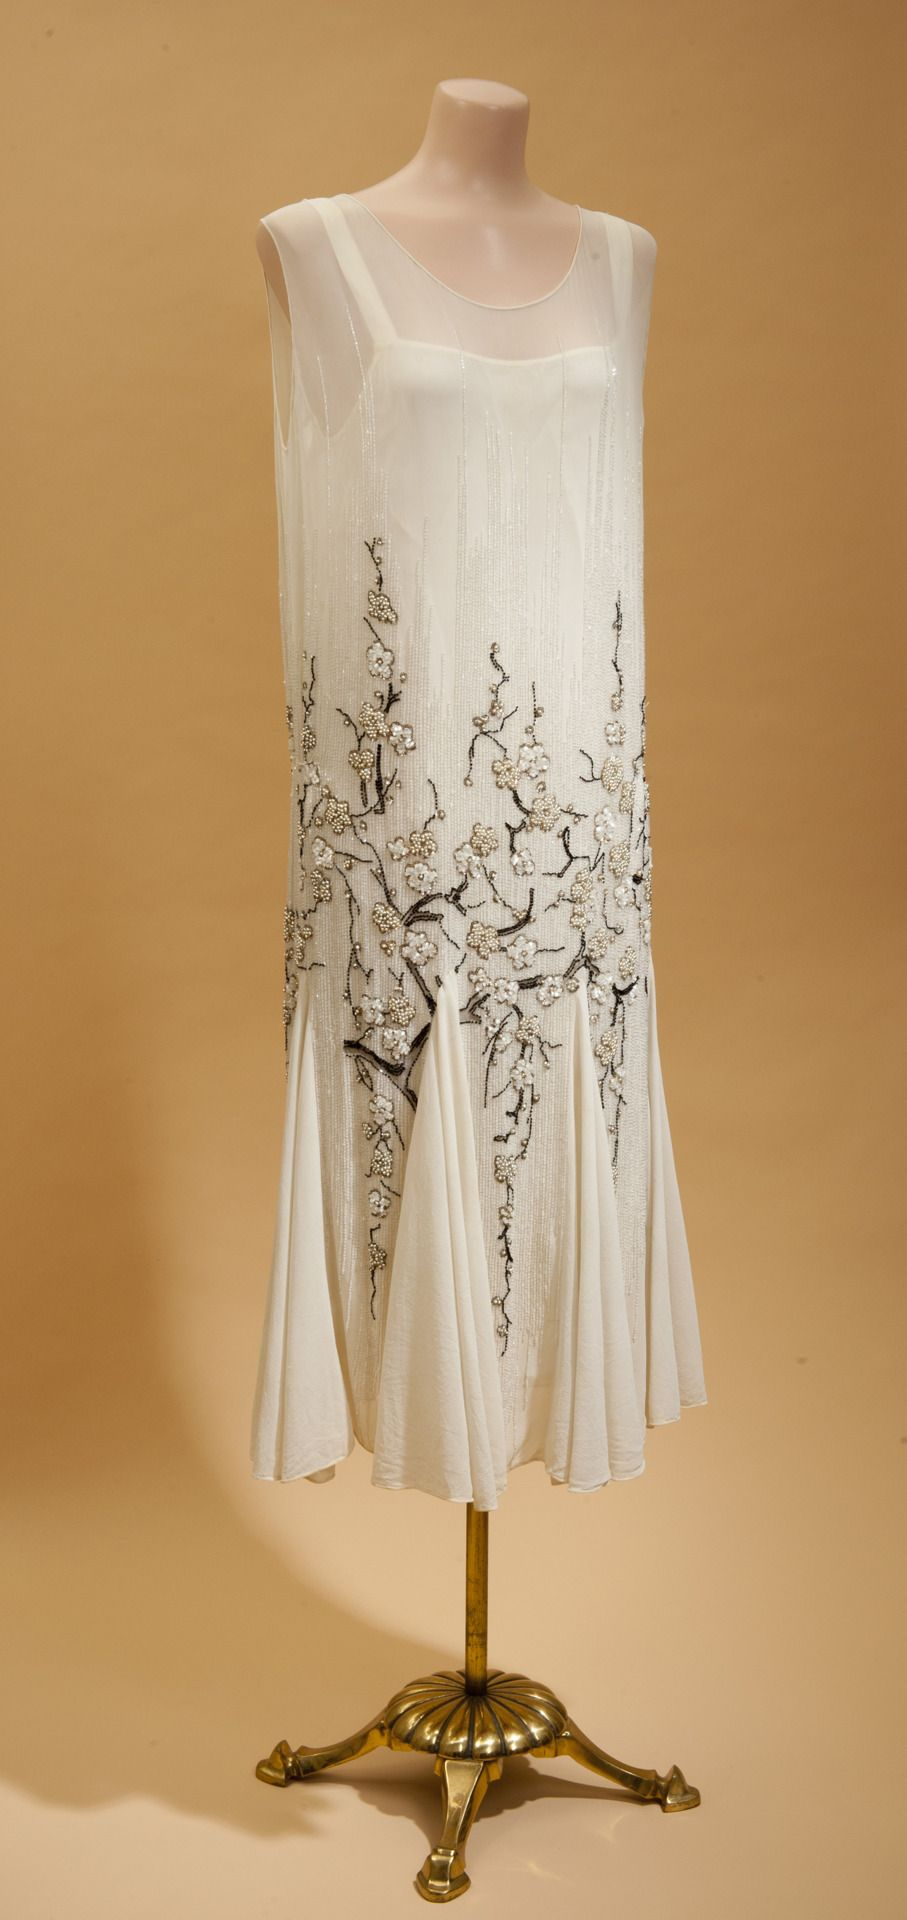 From Fashionable Art: 1926-29 chiffon dinner dress with cherry ...